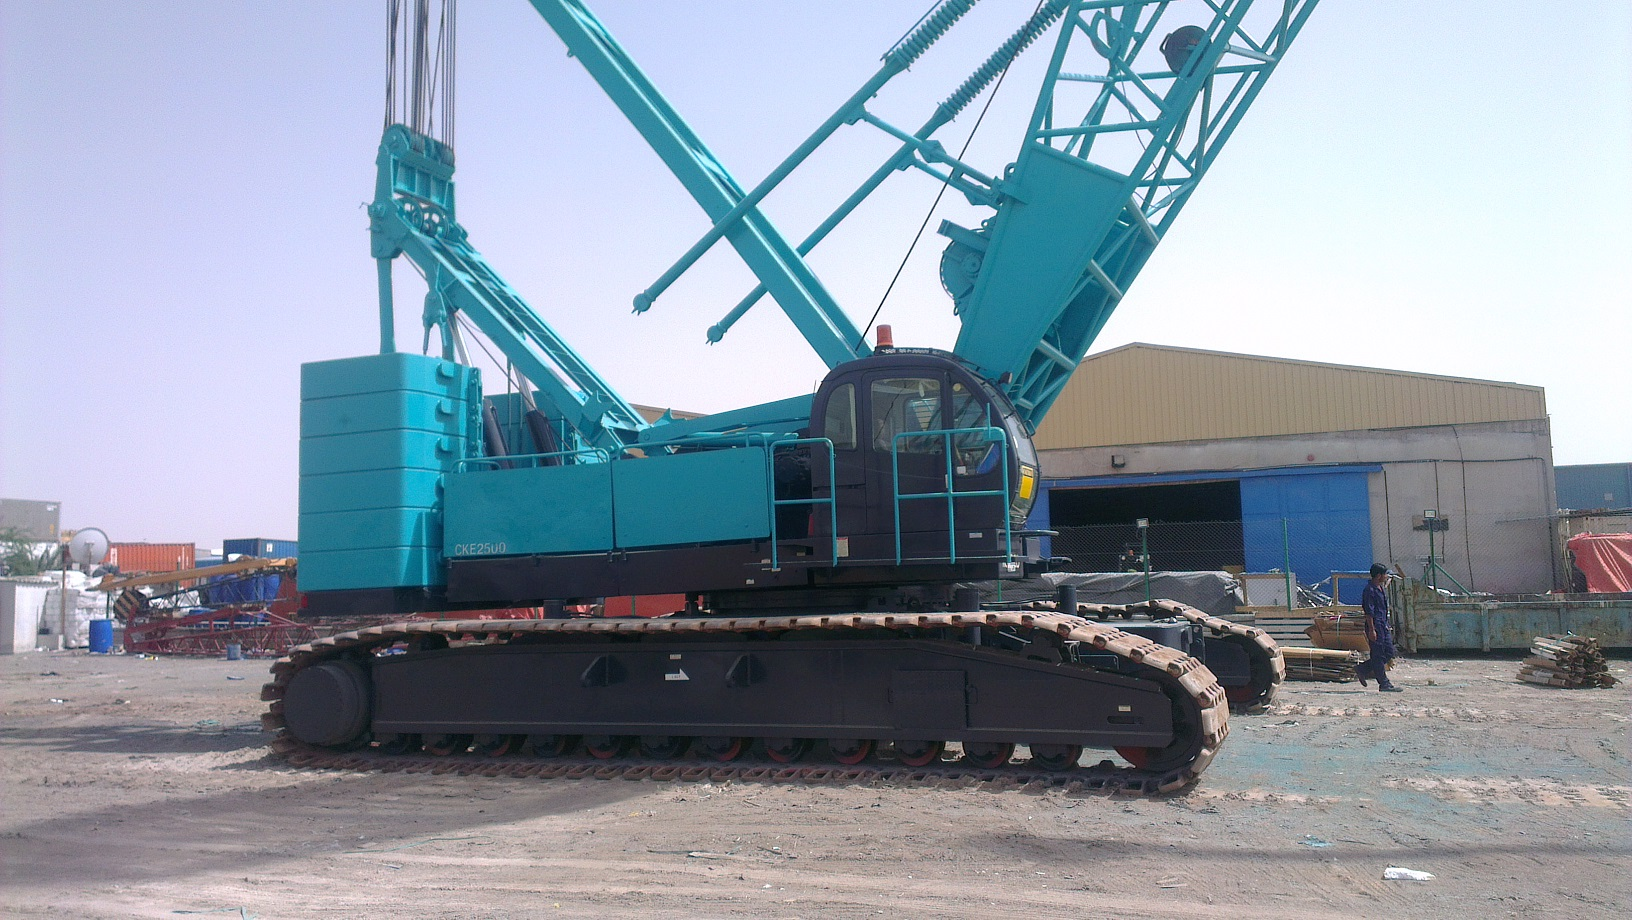 Kobelco 2500 photo - 4